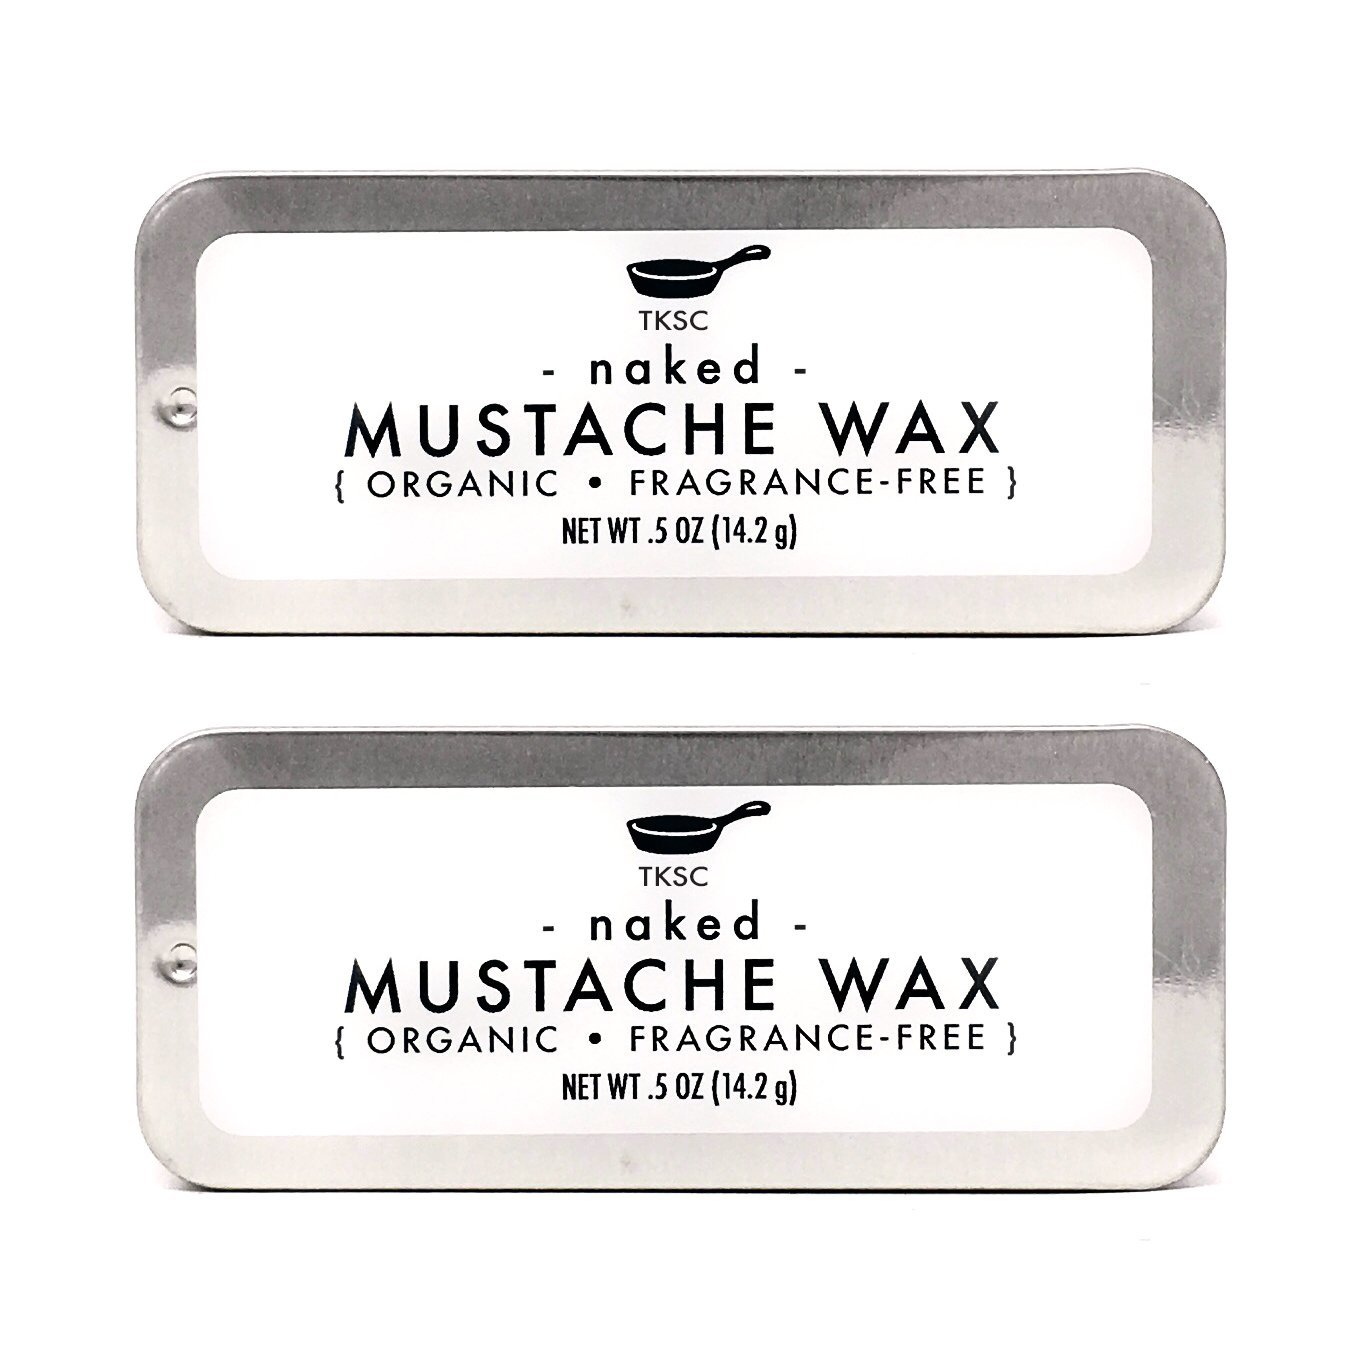 Mustache Wax - Naked (Fragrance-free) Handmade with Organic Ingredients (2 Pack) by Tiny Kitchen Soap Co.